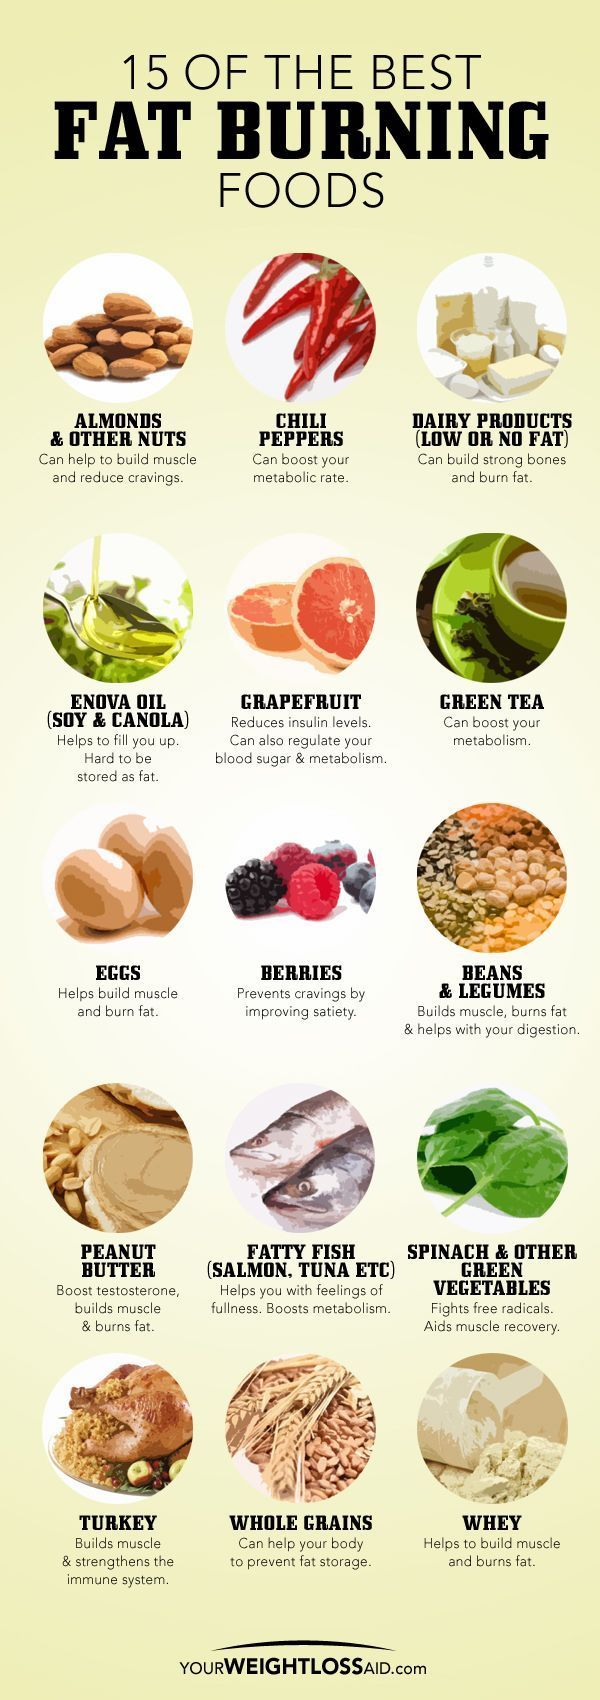 15 Of The Best Fat Burning Foods food healthy weight loss health healthy food healthy living eating fat loss metabolism weight loss tips